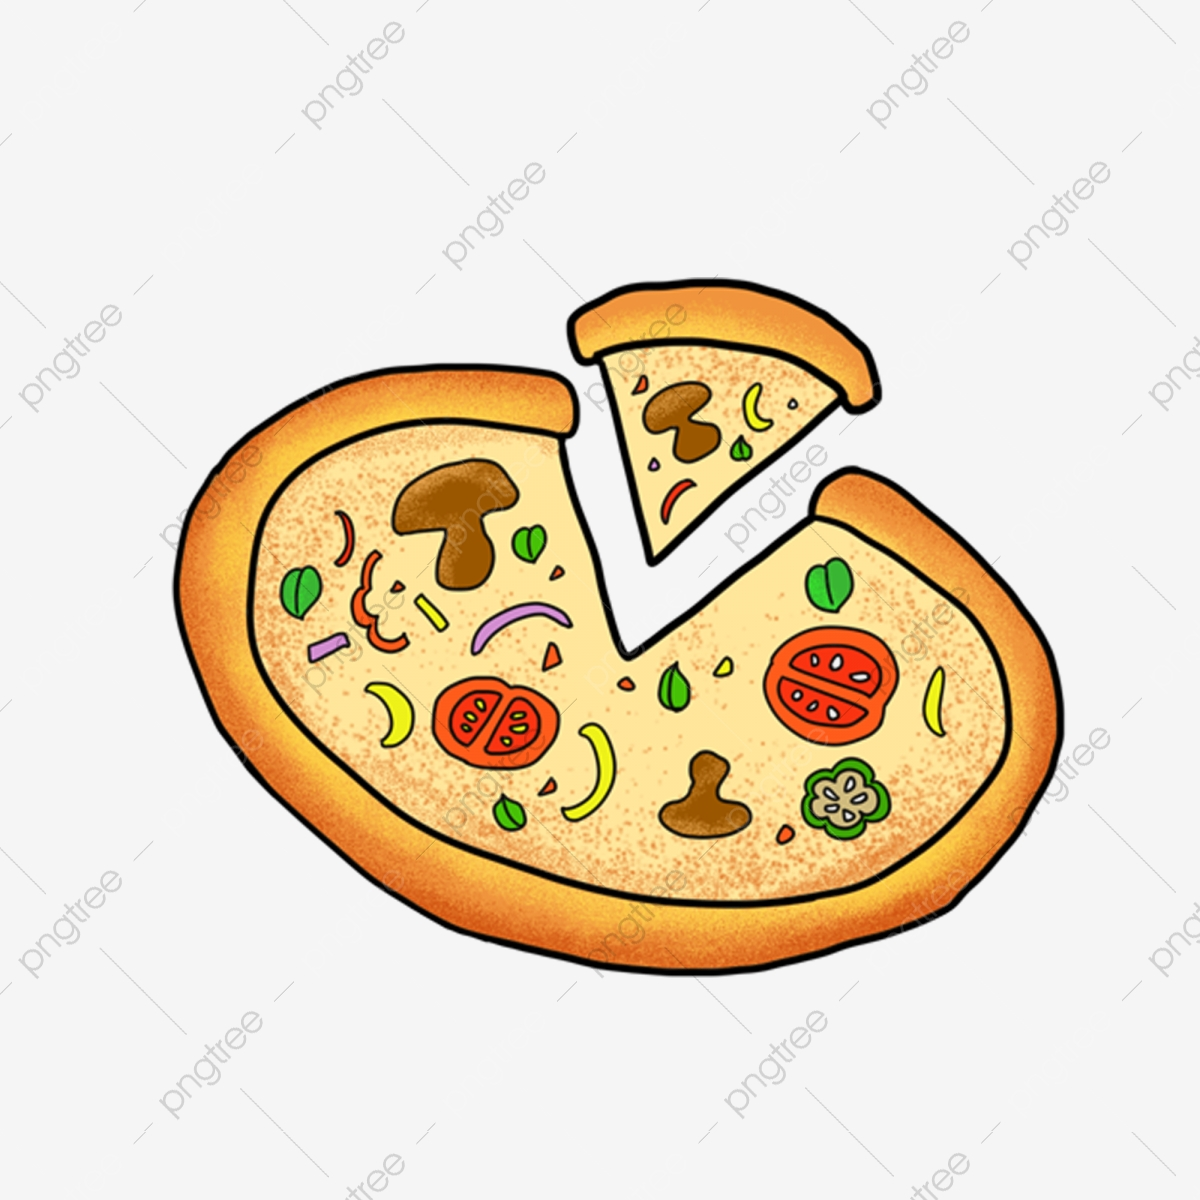 Pizza Cook Clipart , Free Transparent Clipart - ClipartKey